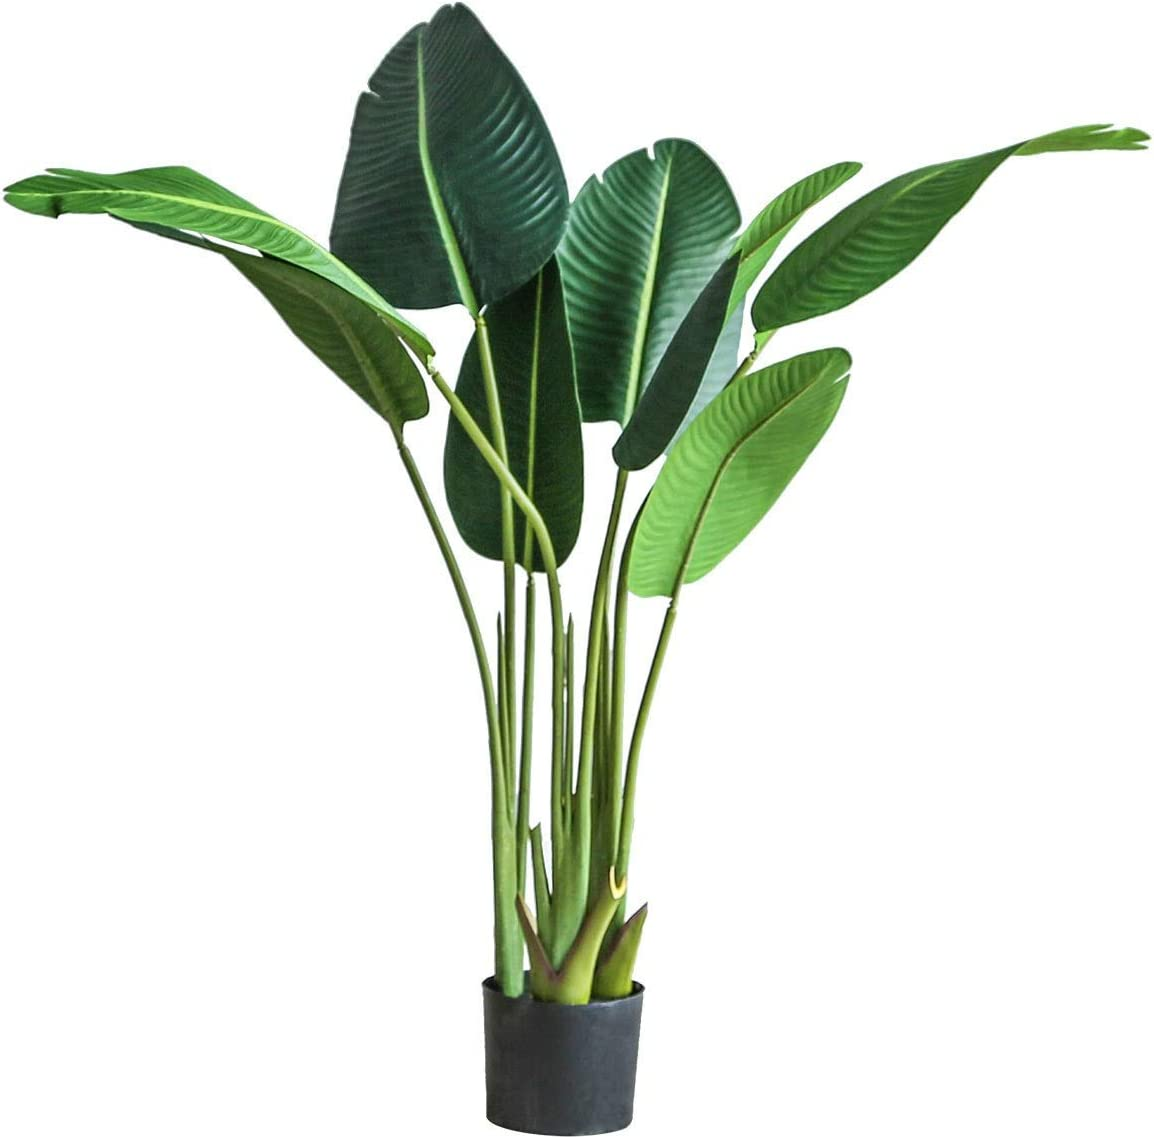 kutuuhome Artificial Bird of Paradise Plant Fake Tropical Palm Tree for Indoor Outdoor Perfect Faux Plants for Home Garden Office Store Decoration 10 Leaves(1 Pack,47 Inch)